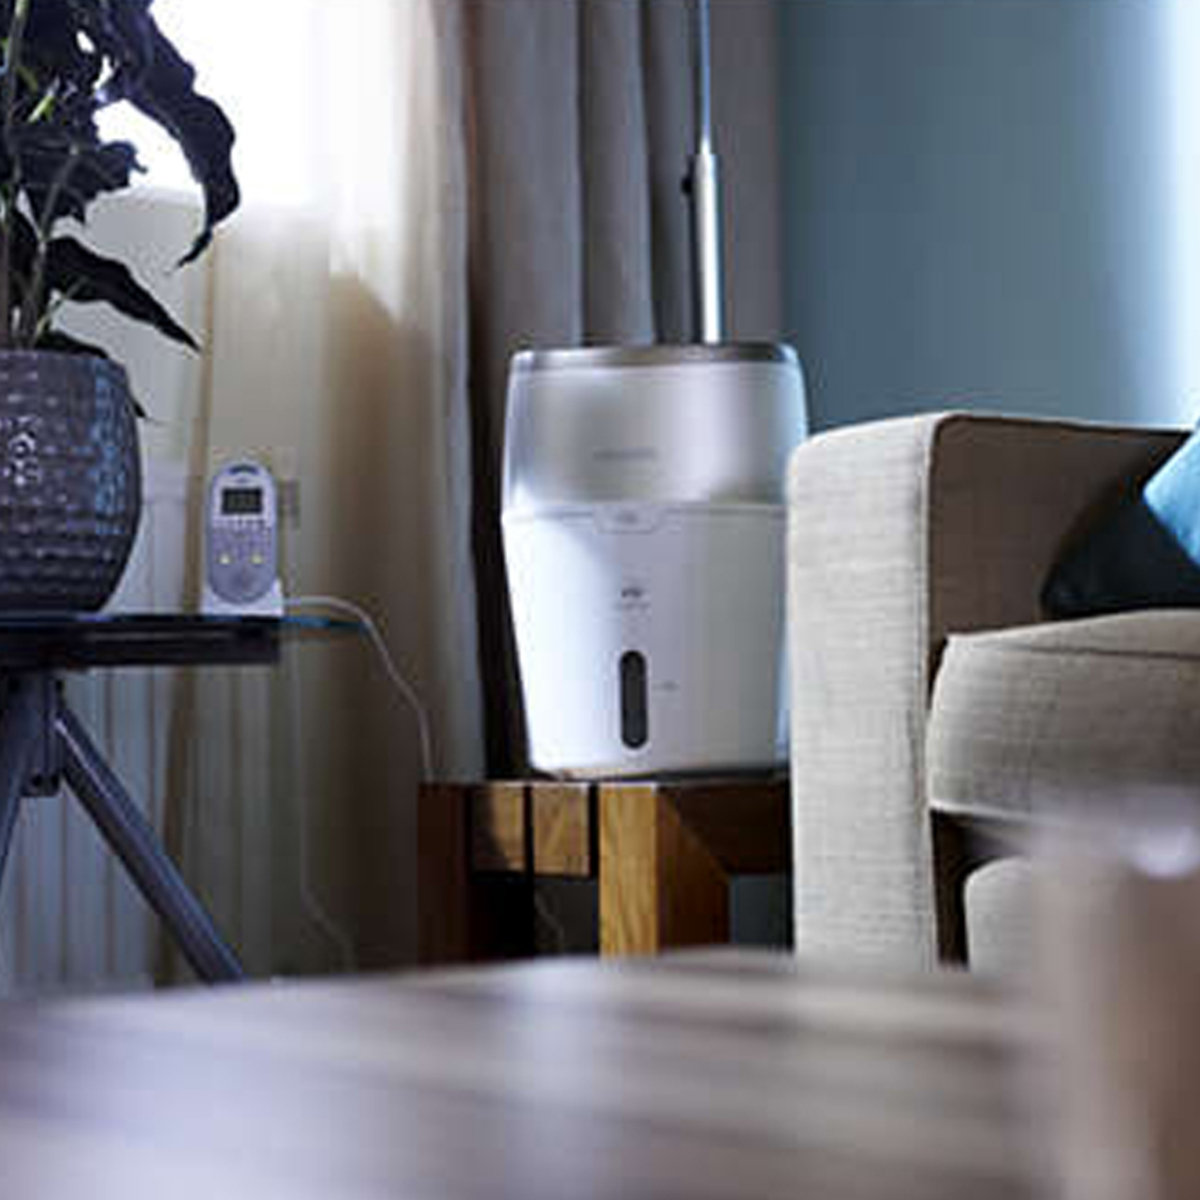 philips avent humidificateur d 39 air s curit domestique. Black Bedroom Furniture Sets. Home Design Ideas